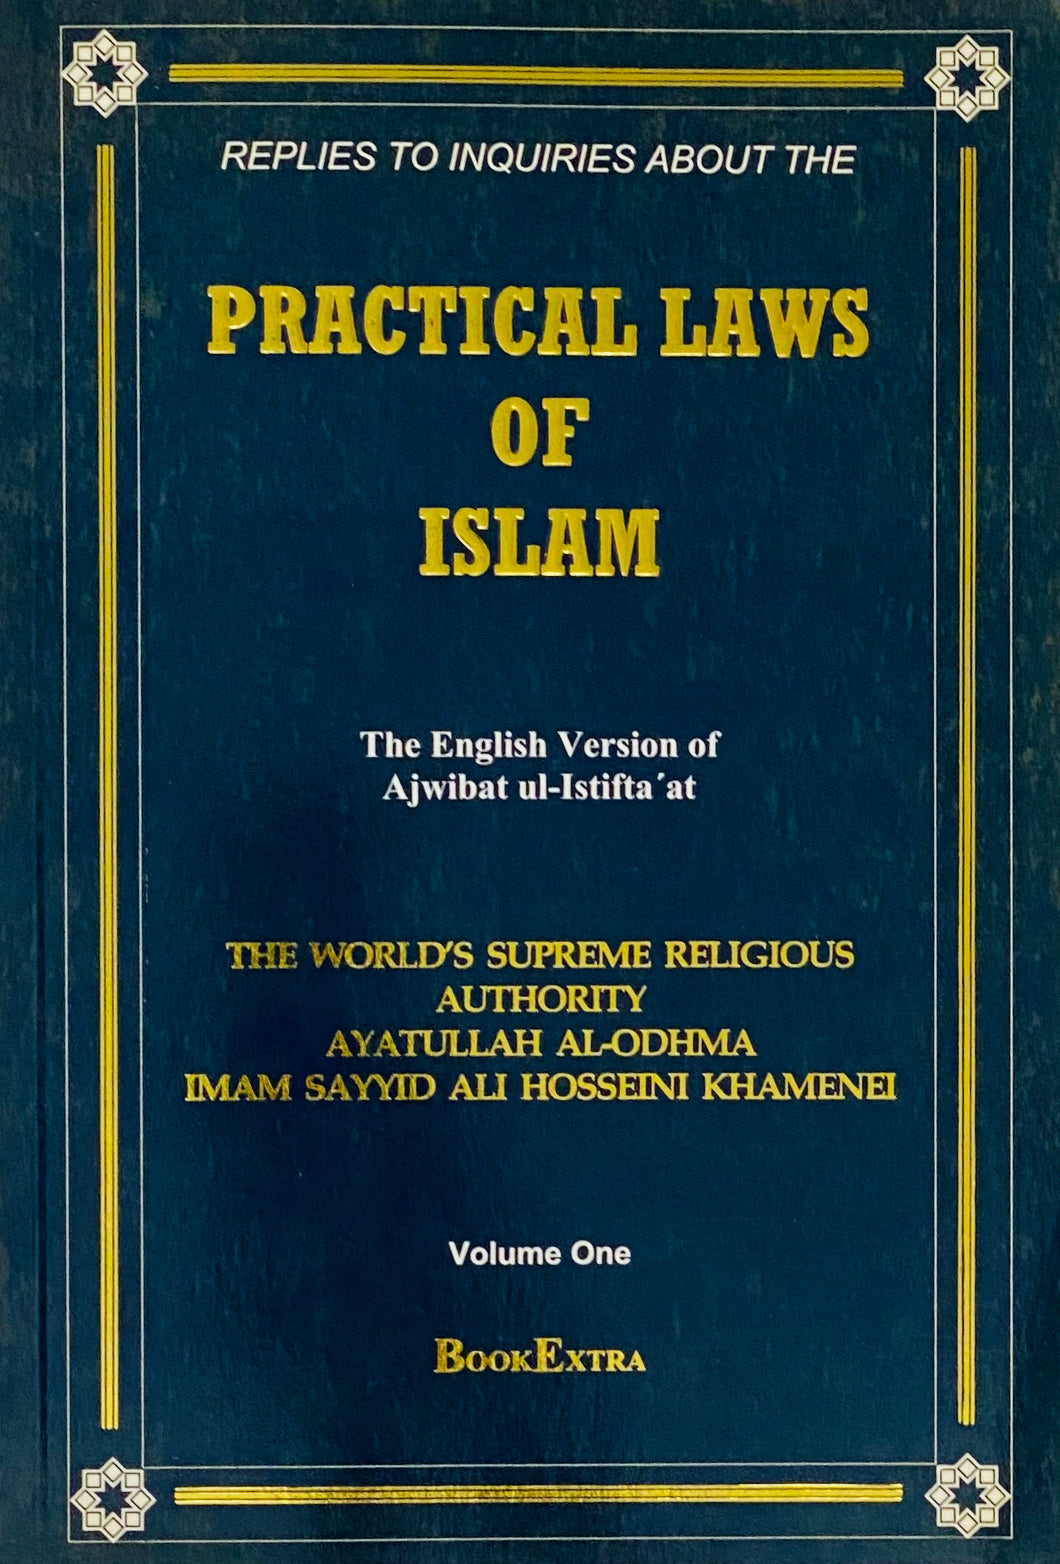 Practical Laws of Islam